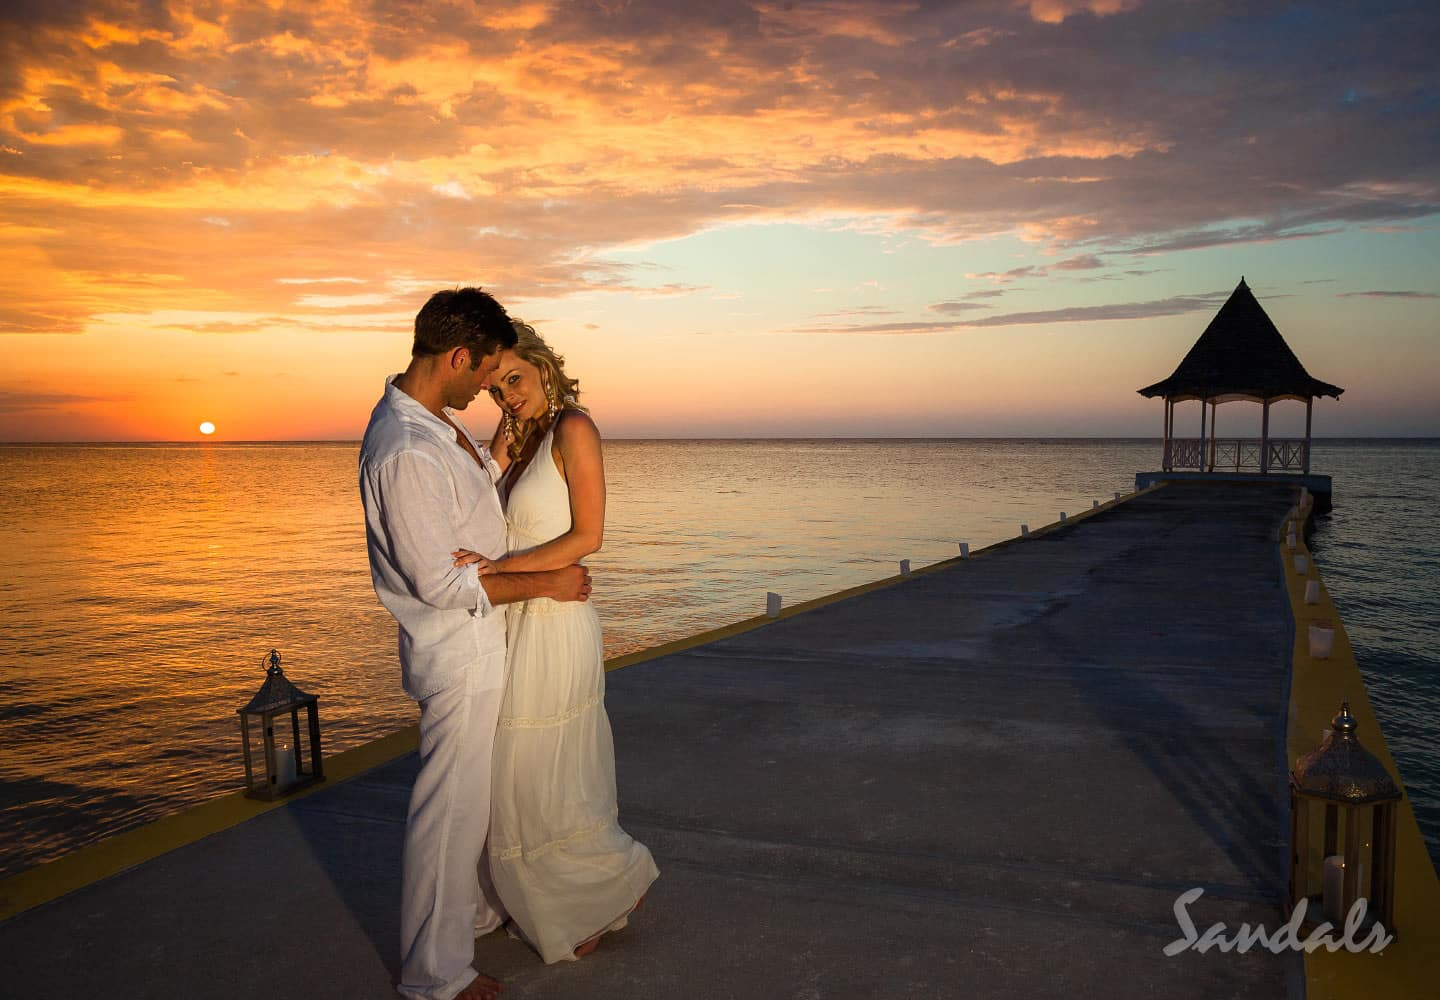 All Inclusive Honeymoon Vacations  Your Luxury Romance